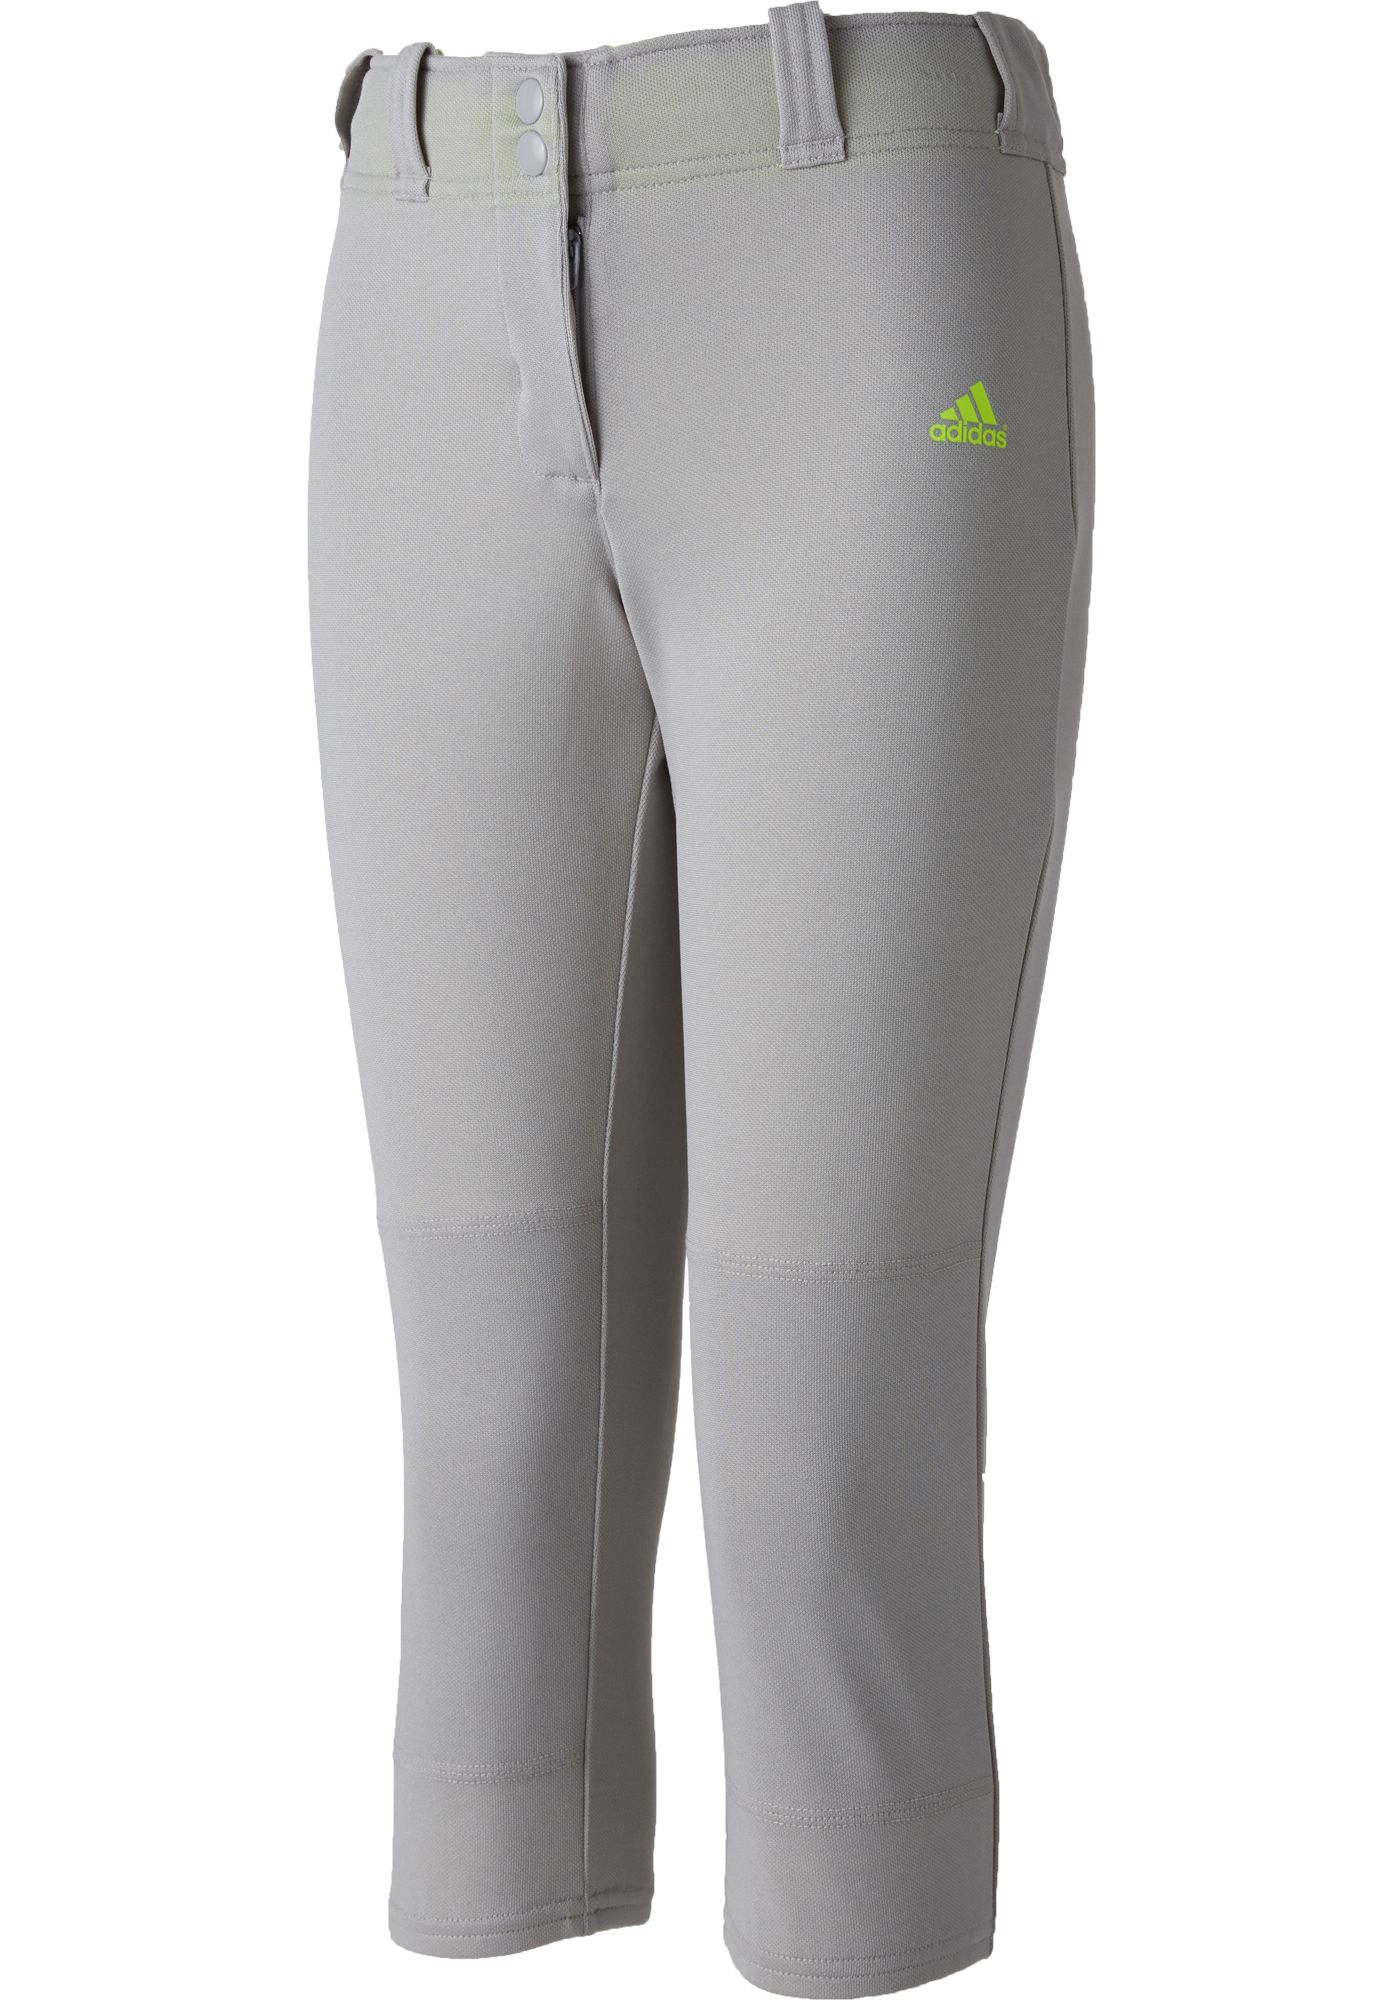 adidas Girls' Destiny Softball Pants